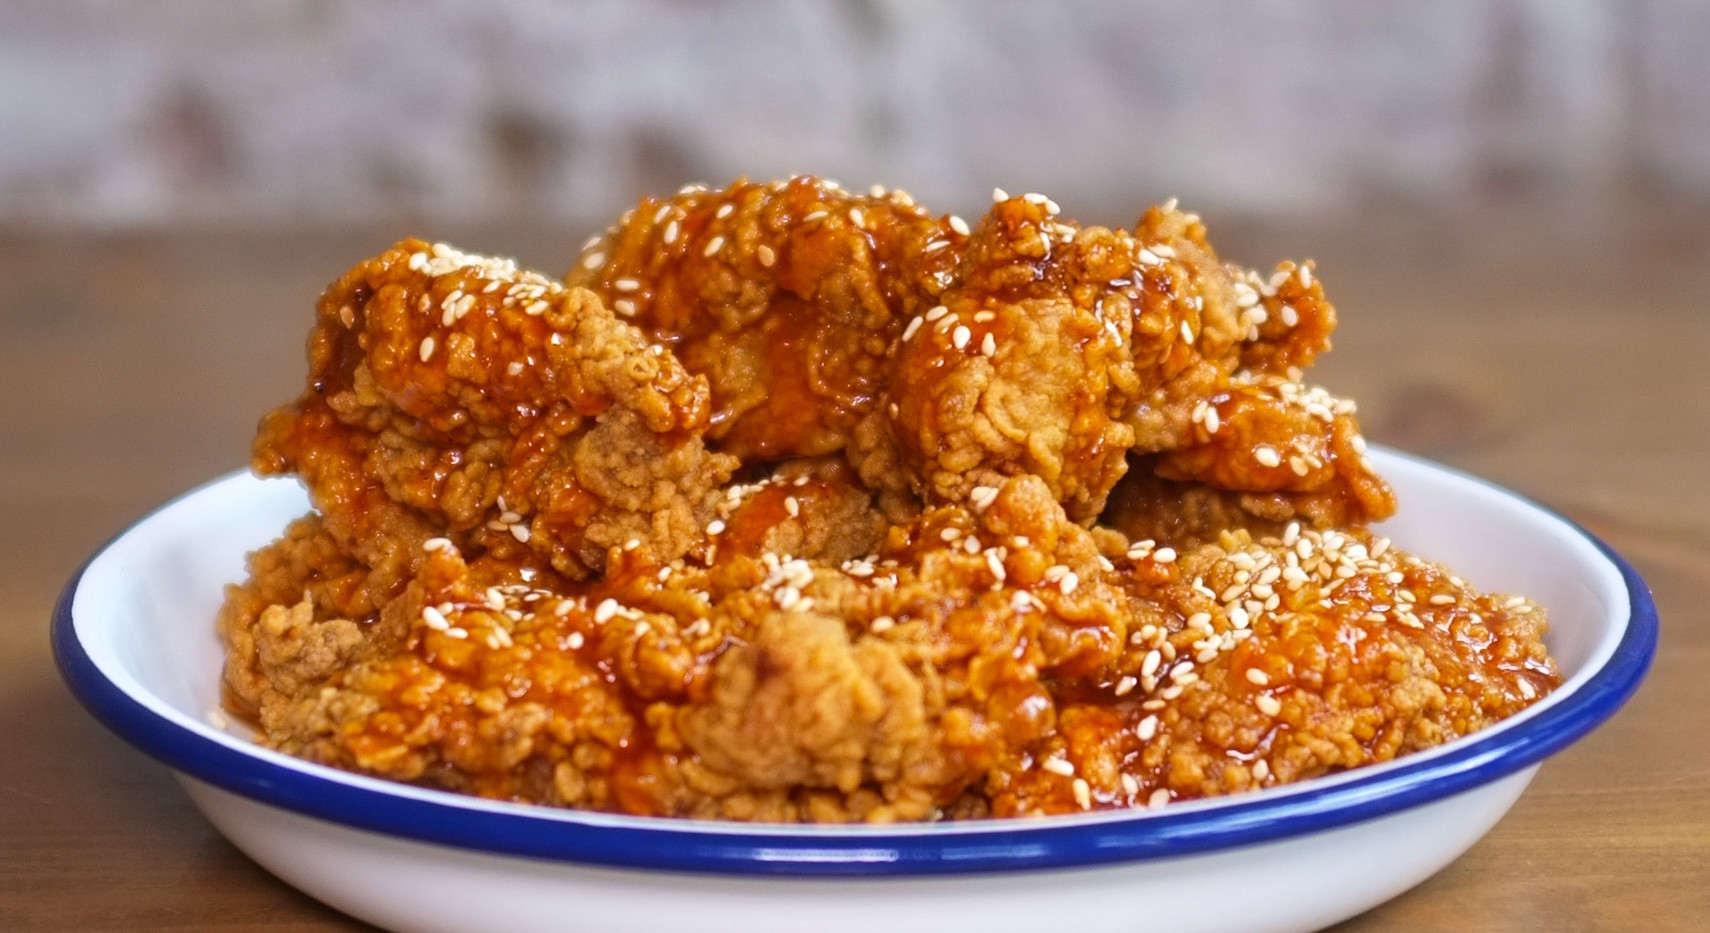 SWEET AND SPICY STRIPS